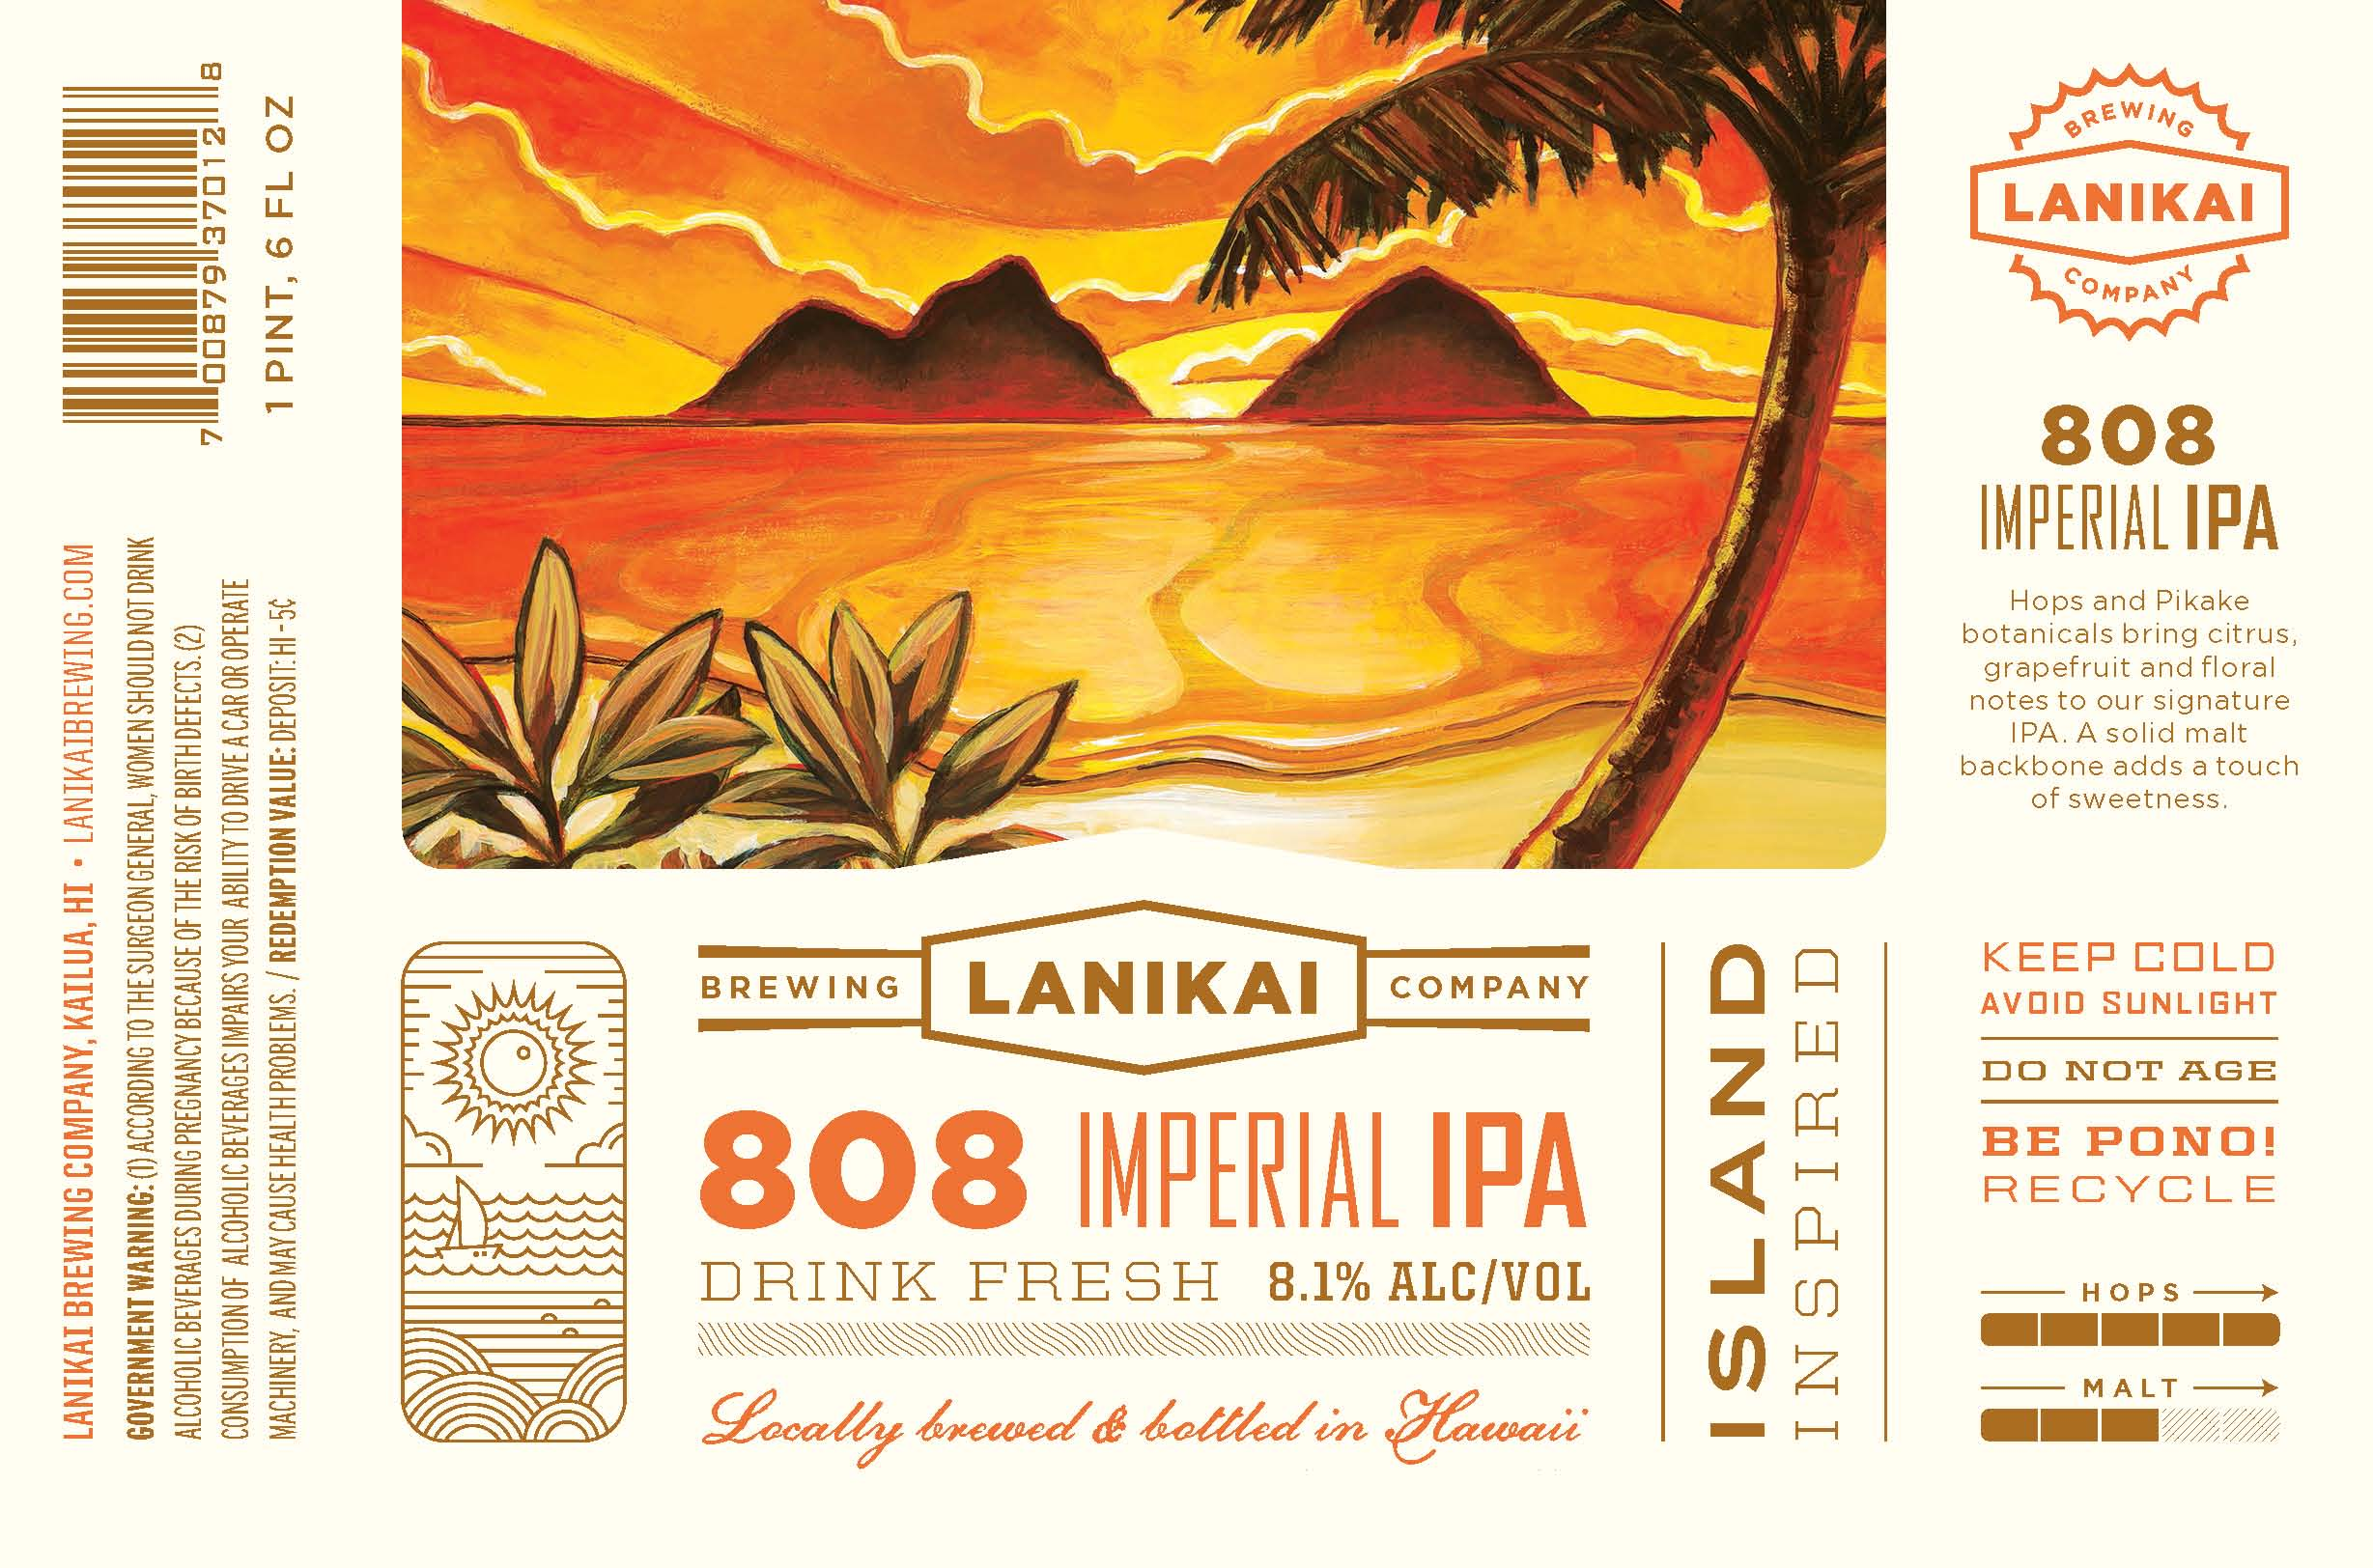 lanikai-brewing-808-imperial-ipa-label.jpg